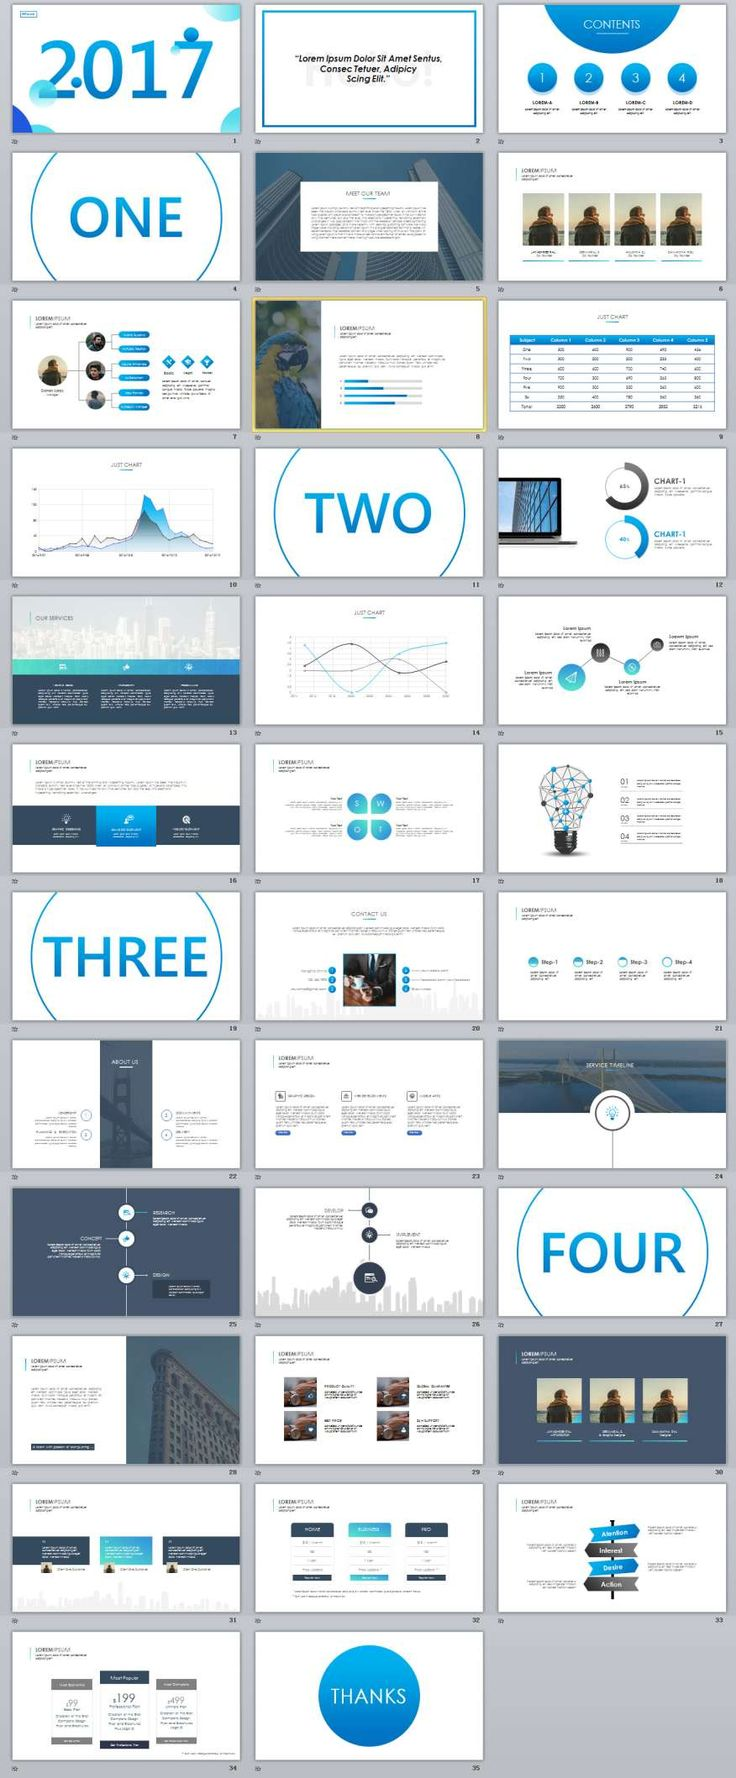 62 best 2018 business powerpoint templates images on pinterest, Modern powerpoint